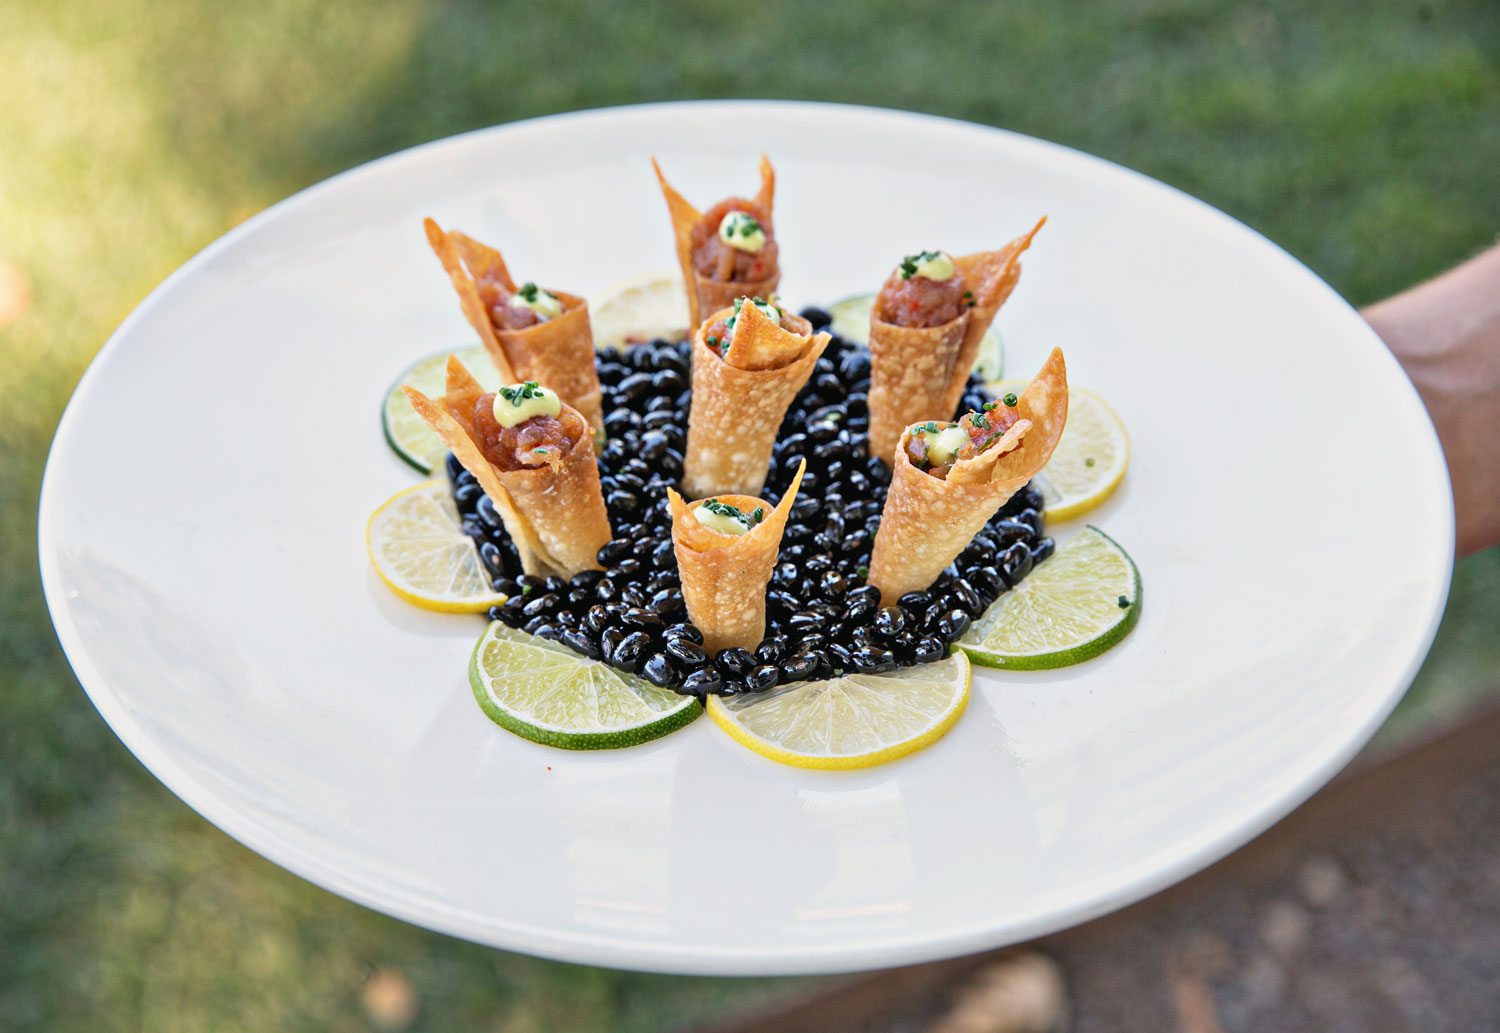 How To Choose Your Wedding Appetizers